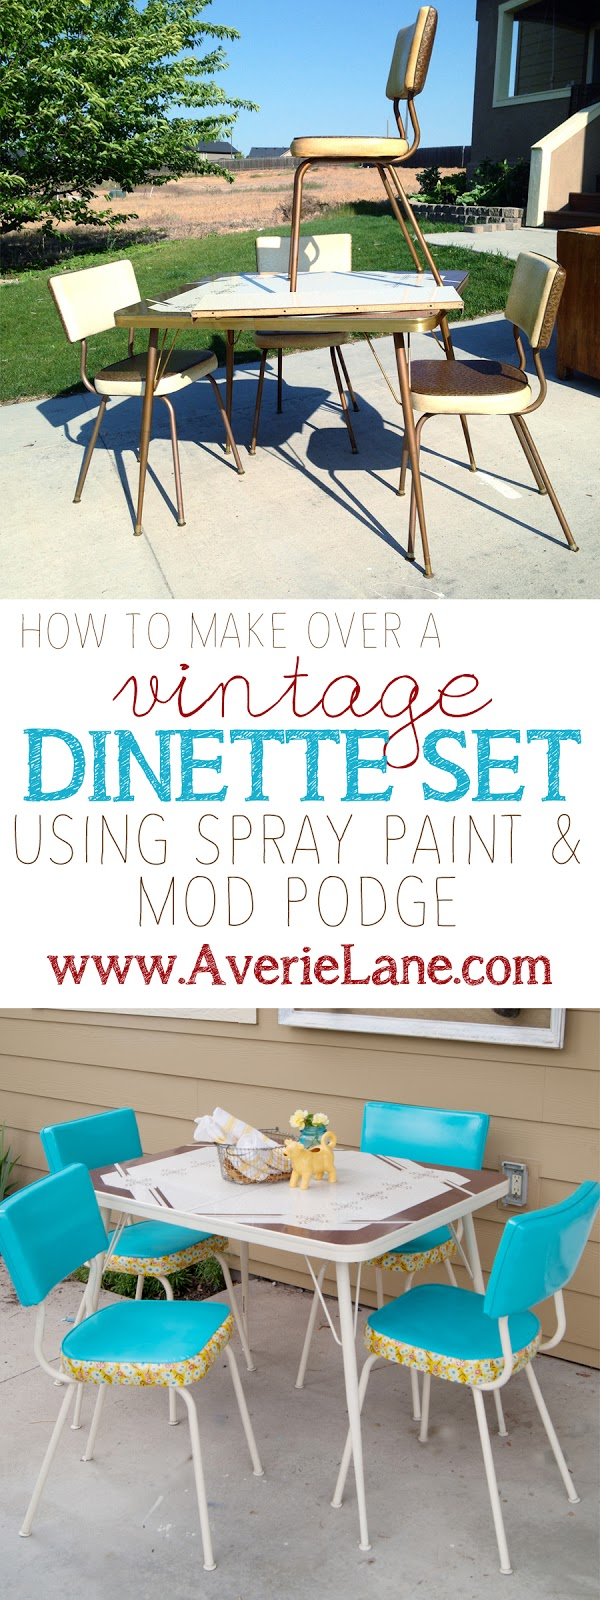 How to Make Over a Vintage Vinyl Dinette Set (using Spray Paint ...